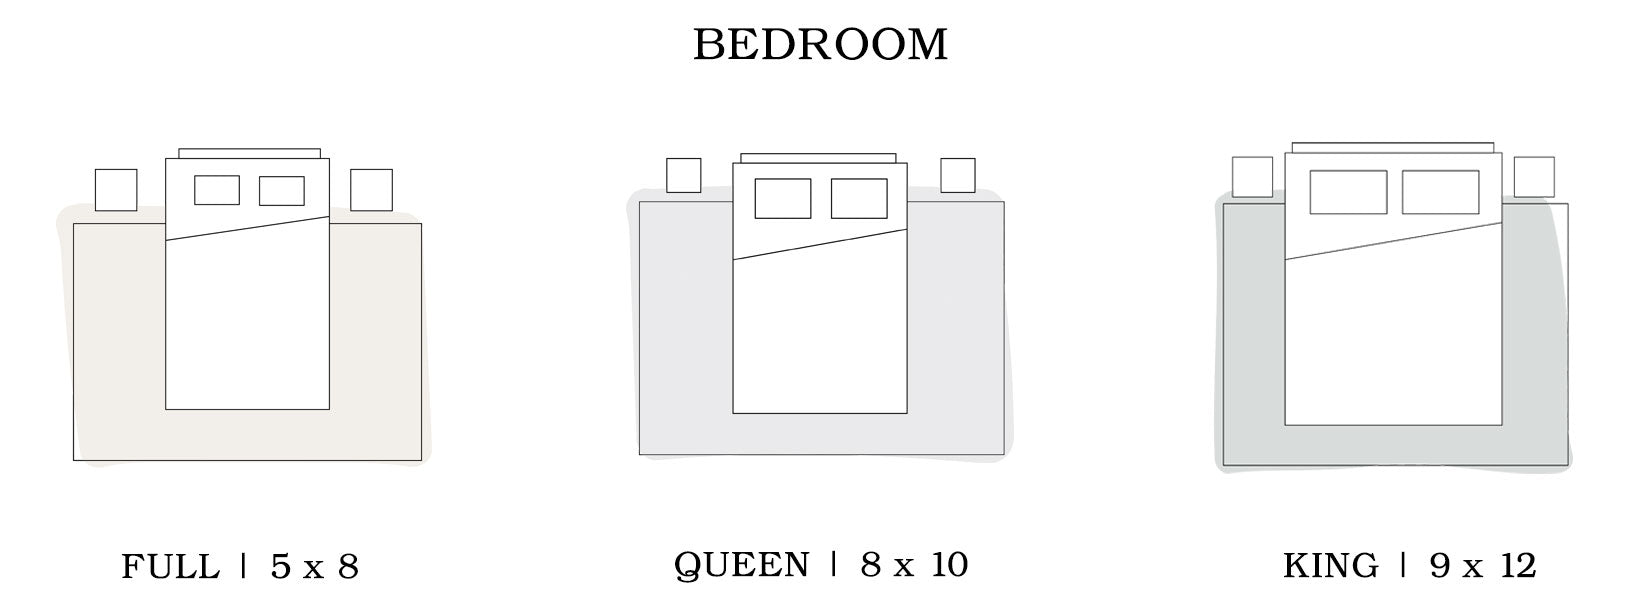 Bedroom Area Rug Sizing